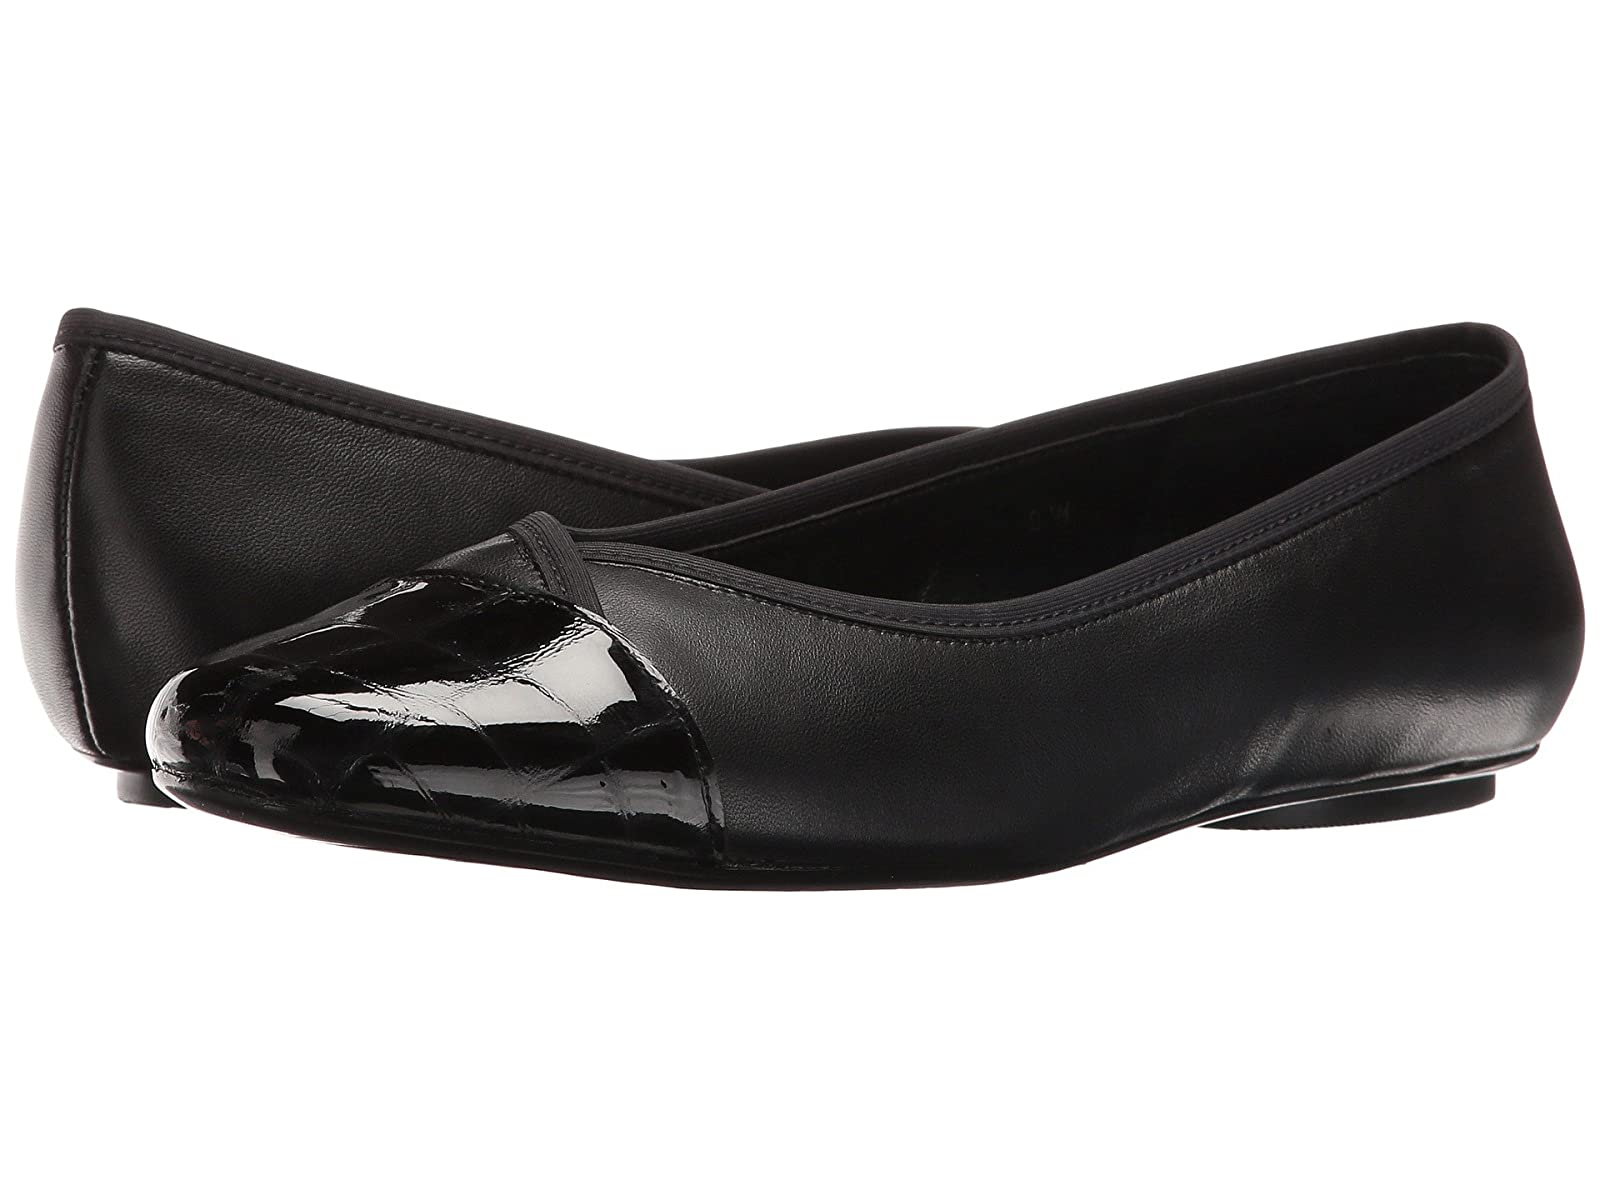 Vaneli SittaCheap and distinctive eye-catching shoes